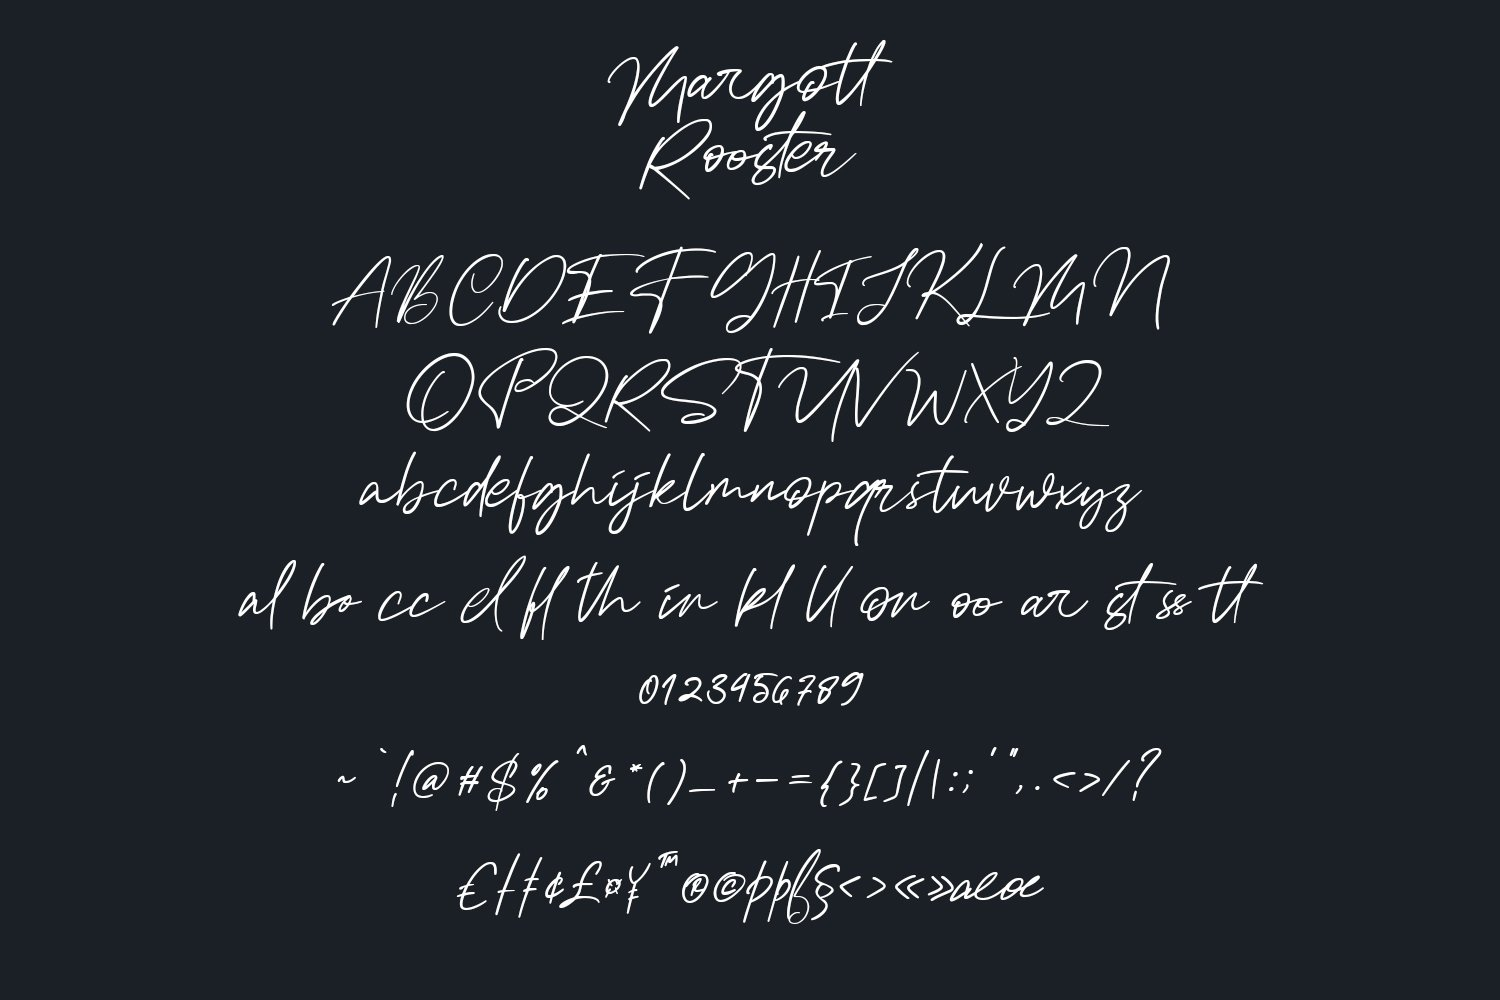 Margott Rooster - Signature Font example image 7